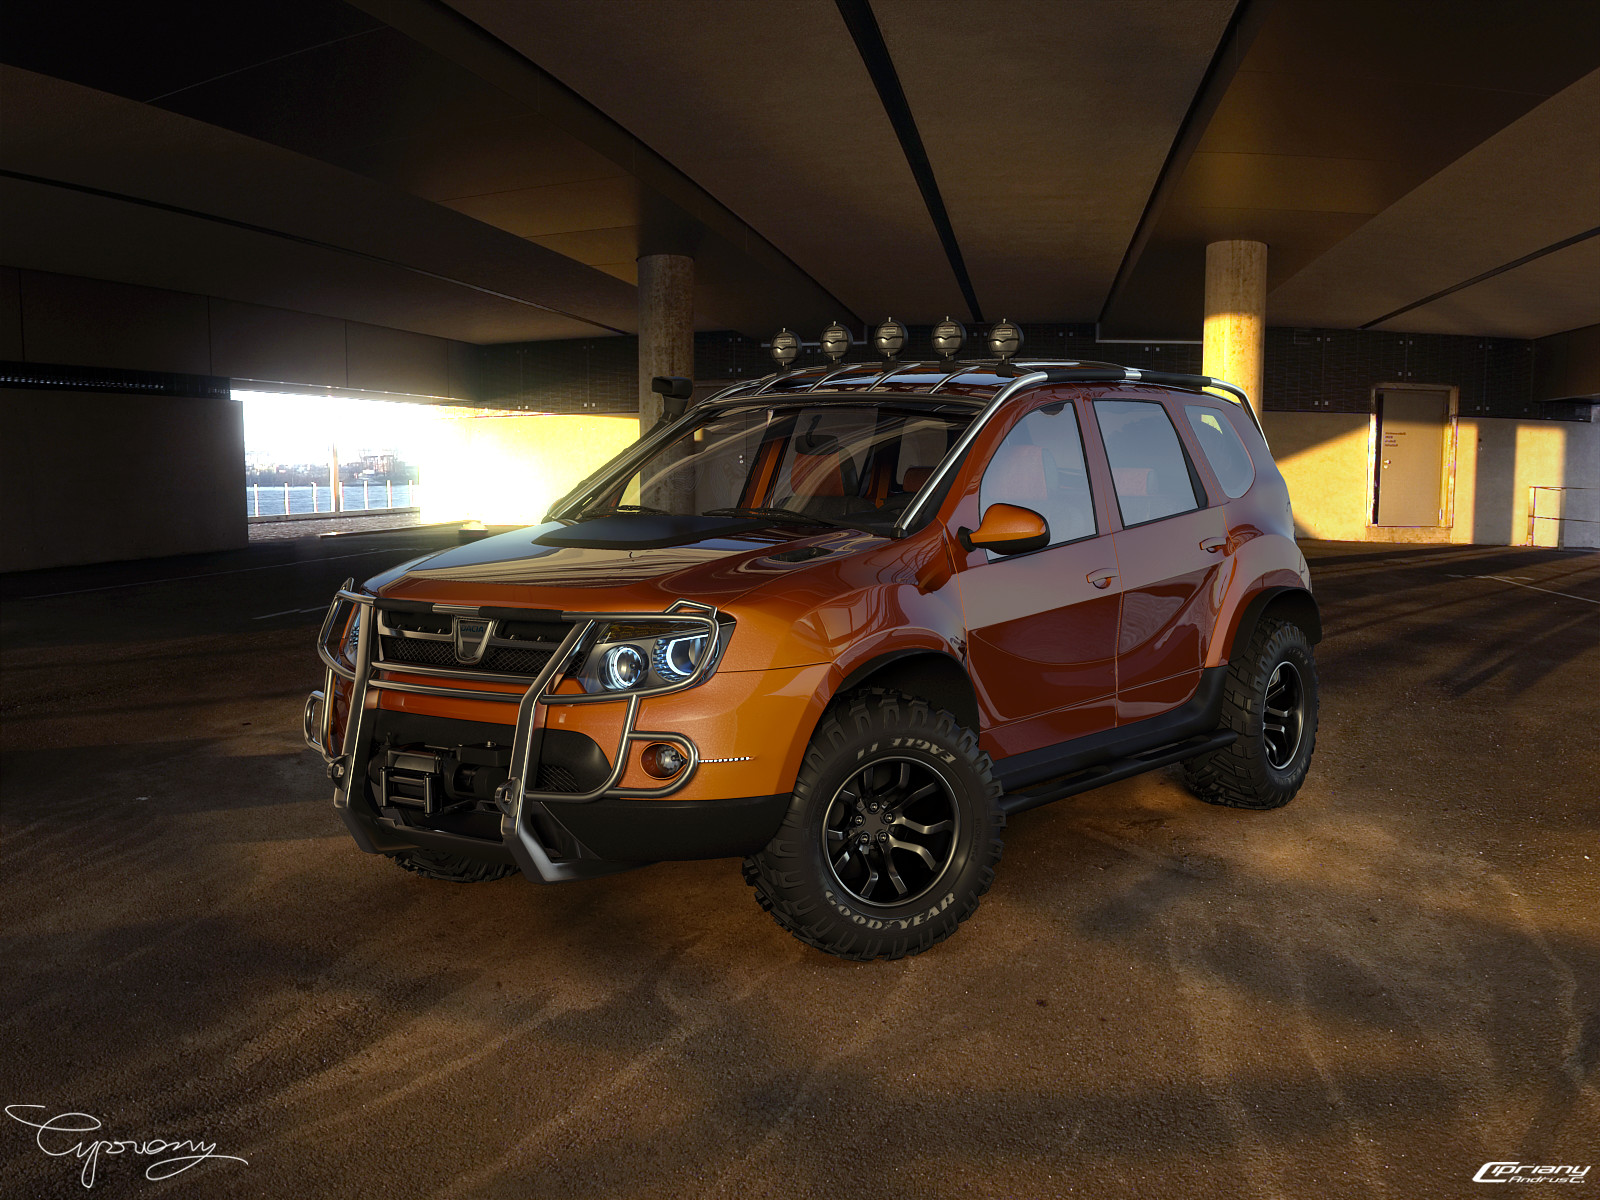 dacia duster tuning 13 by cipriany on deviantart. Black Bedroom Furniture Sets. Home Design Ideas